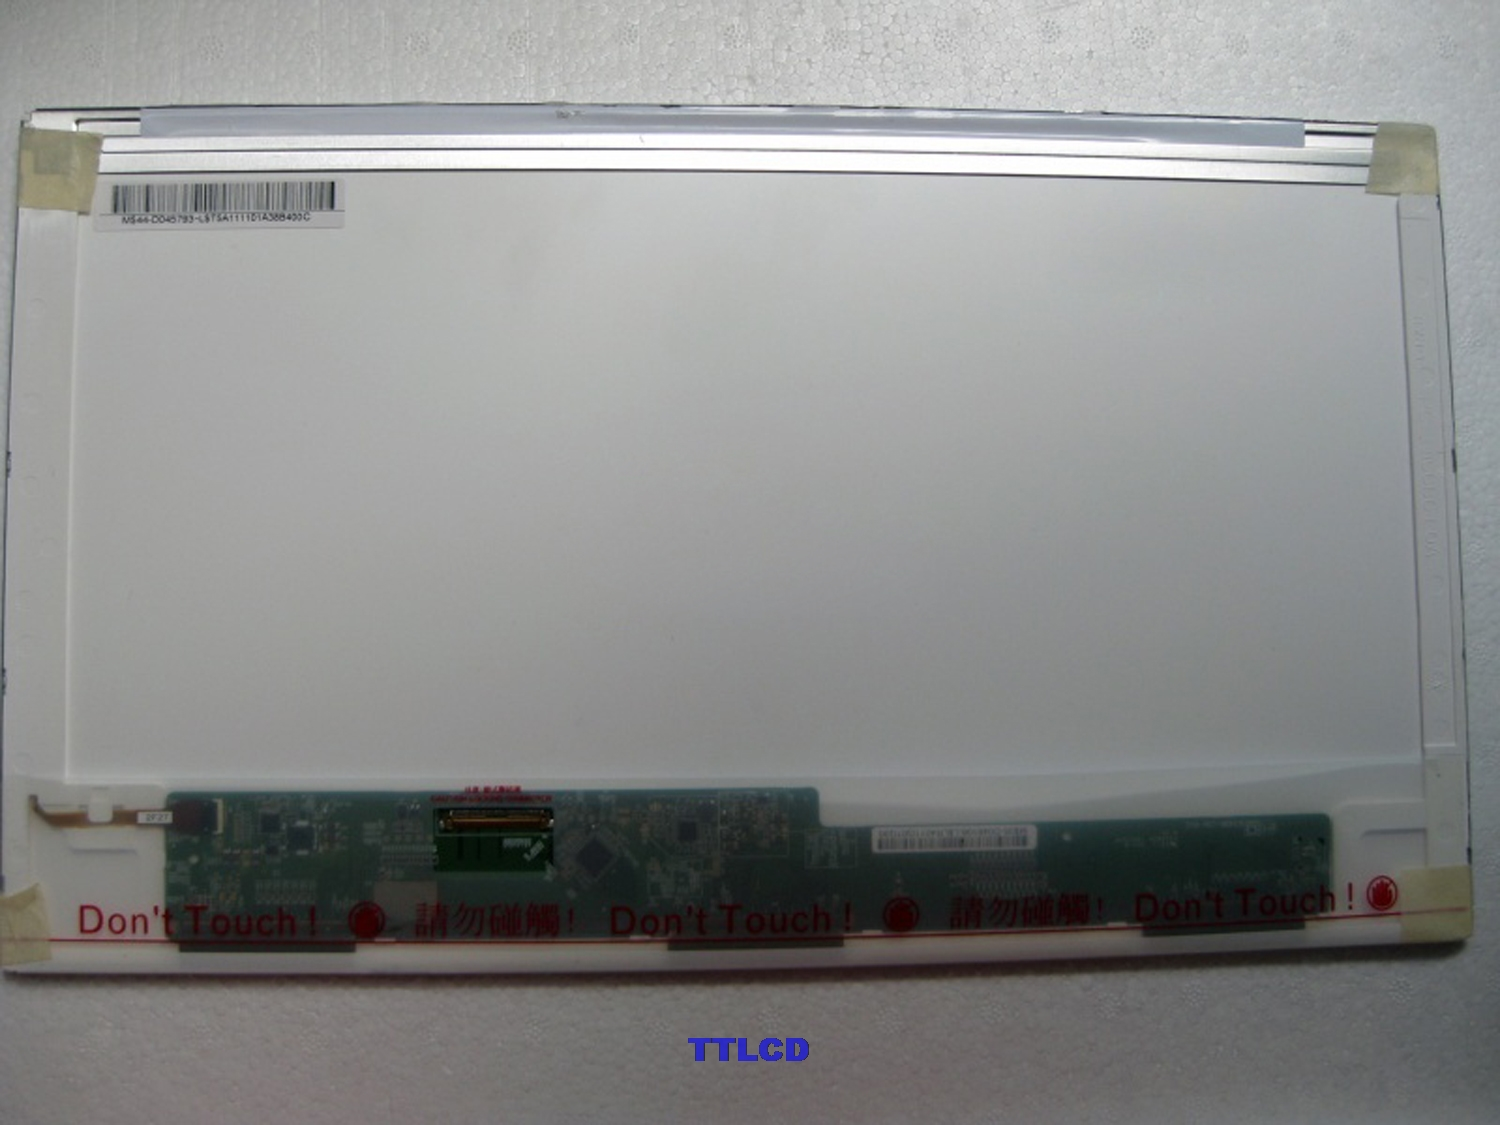 ФОТО QuYing Laptop LCD Screen Compatible Model N156B6 L0B L03 L04 L05 L06 L07 L08 L0A L10 N156BGE L11 L21 LTN156AT32-L01 LTN156AT03